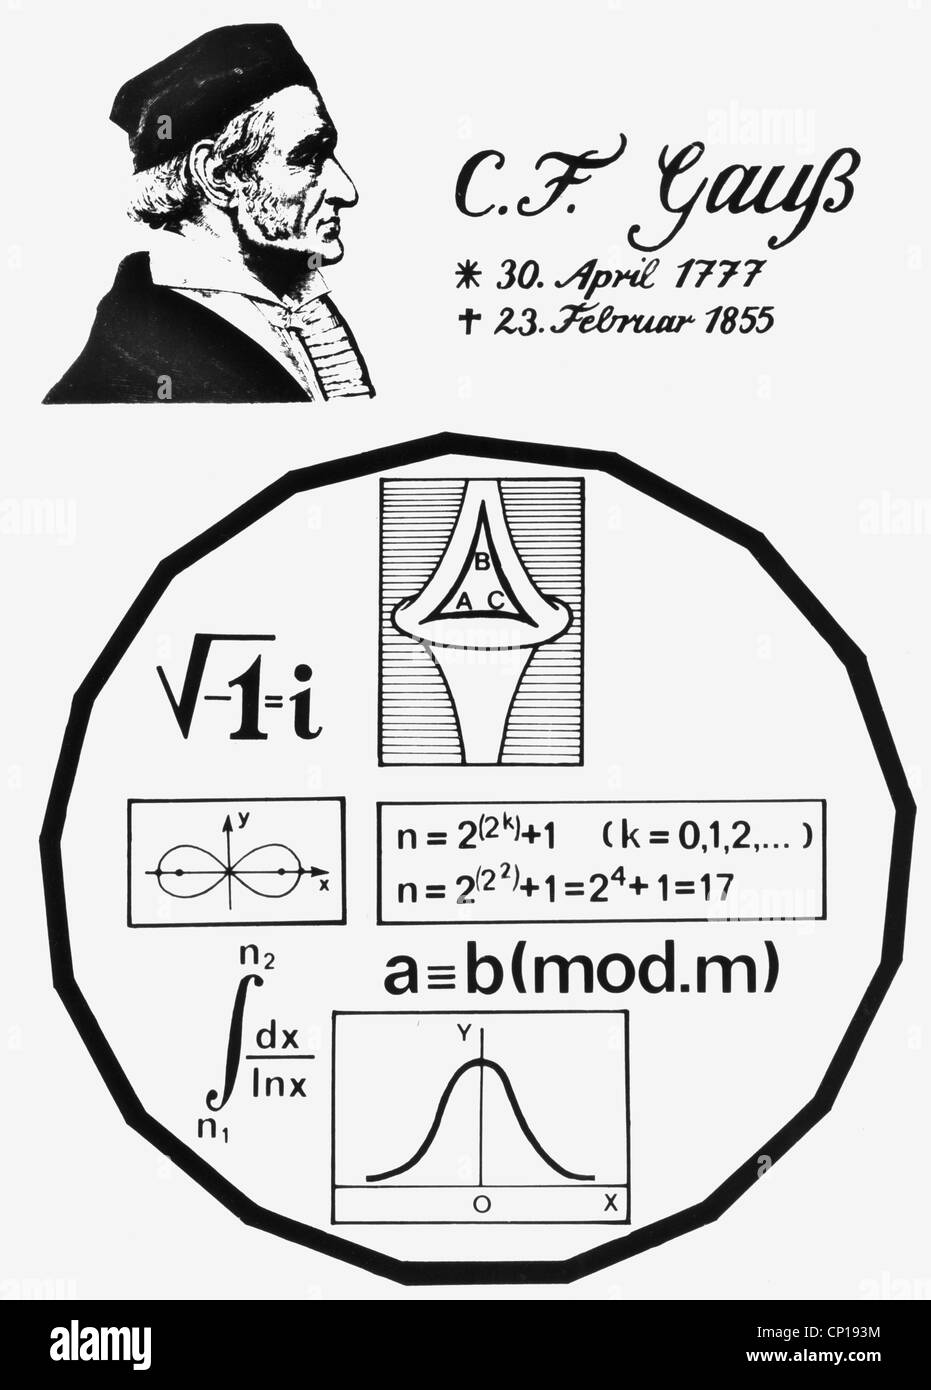 Gauß, Karl Friedrich, 1777 - 1855, German scientist (mathematician), portrait, and graphical sheme of his fundamental - Stock Image